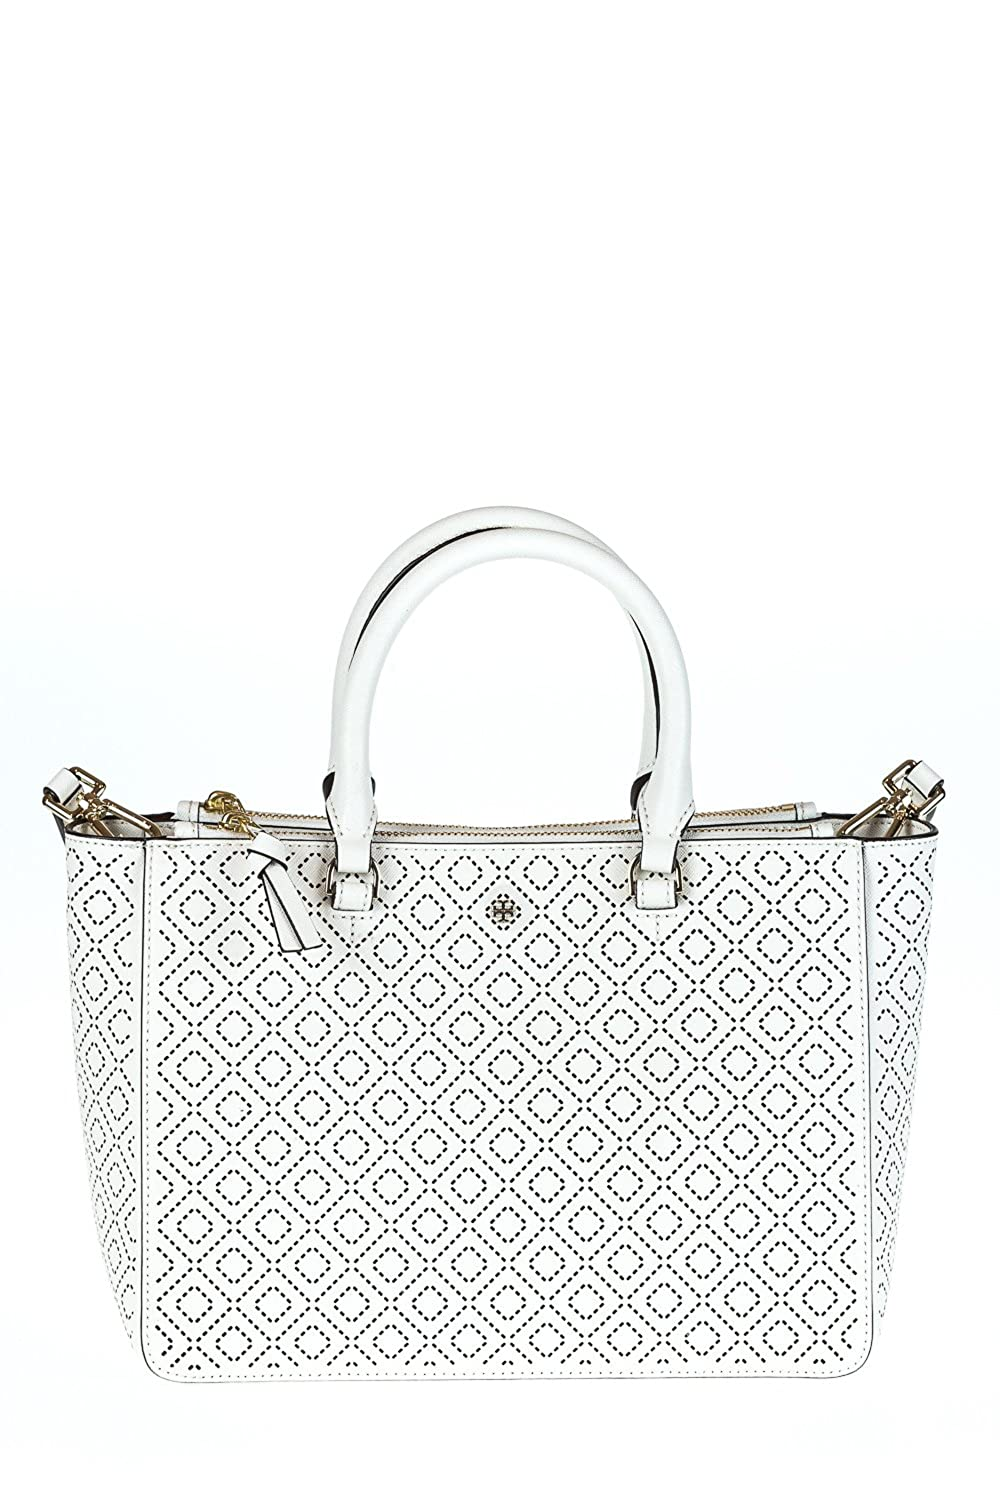 Tory Burch Small Robinson Perforated Toteハンドバッグ新しいアイボリーバッグ B01970HTUM